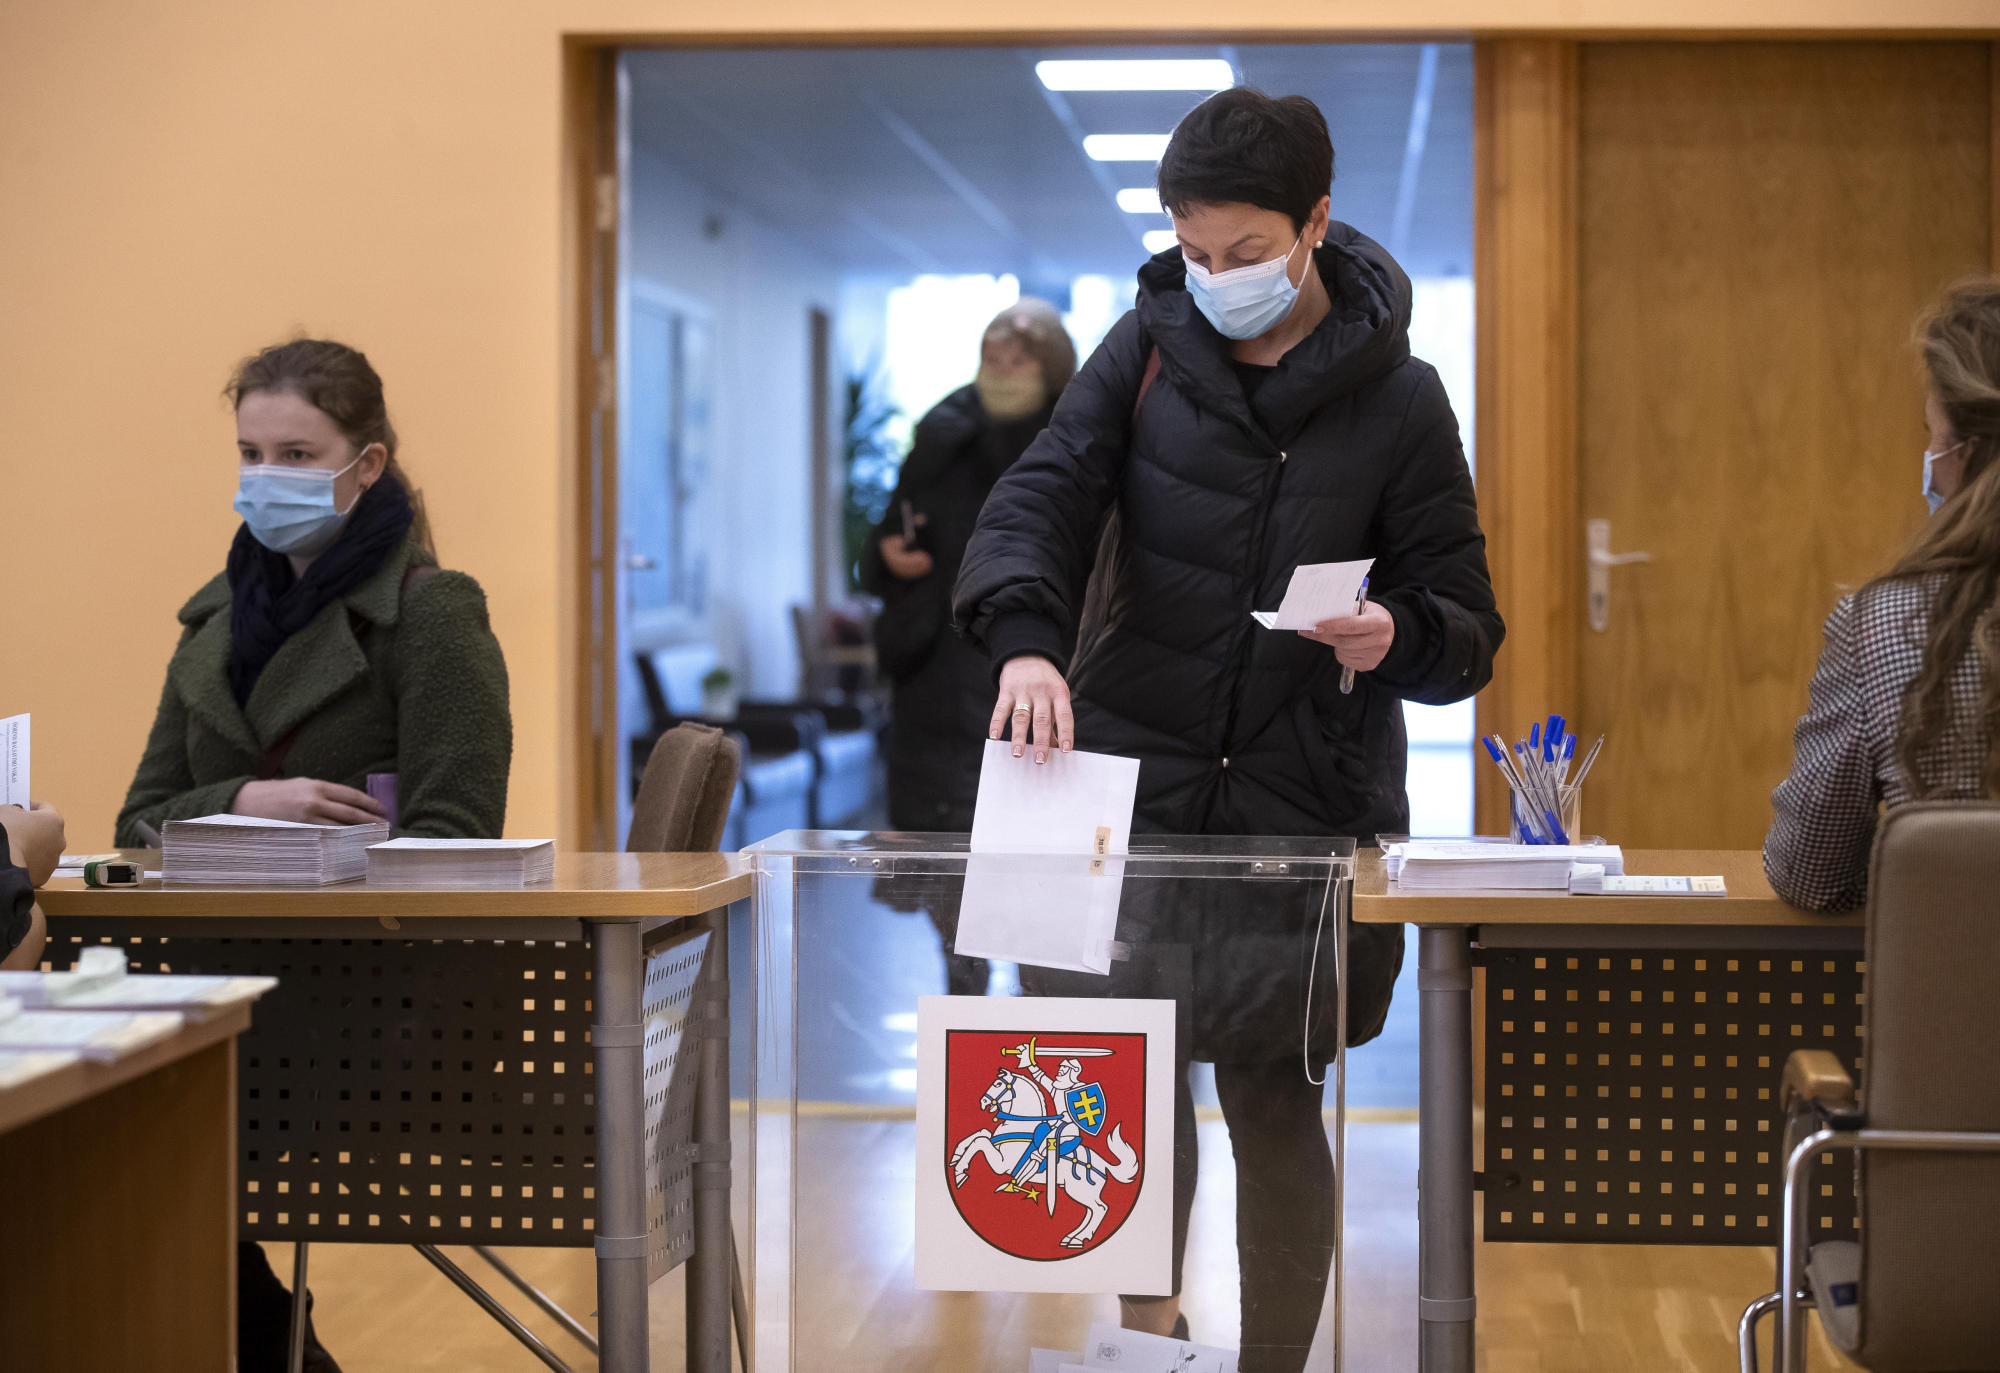 Virus, economy top concerns as Lithuanians vote in runoff